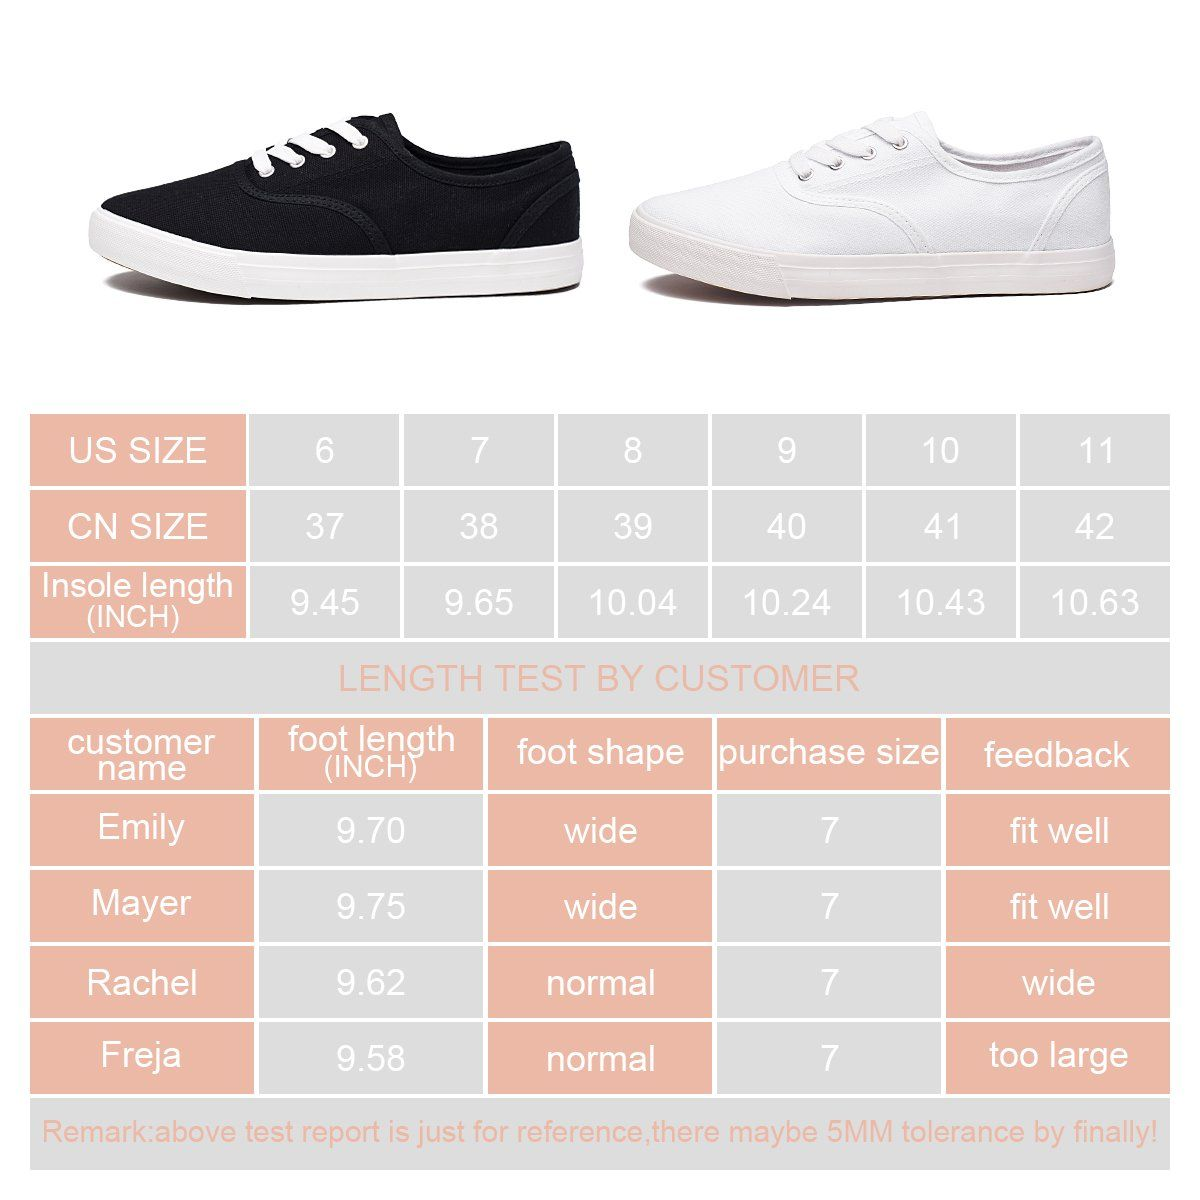 4366e401f6824 ZGR Womens Canvas Shoes Casual Lace Ups Slip On Fashion Walking ...